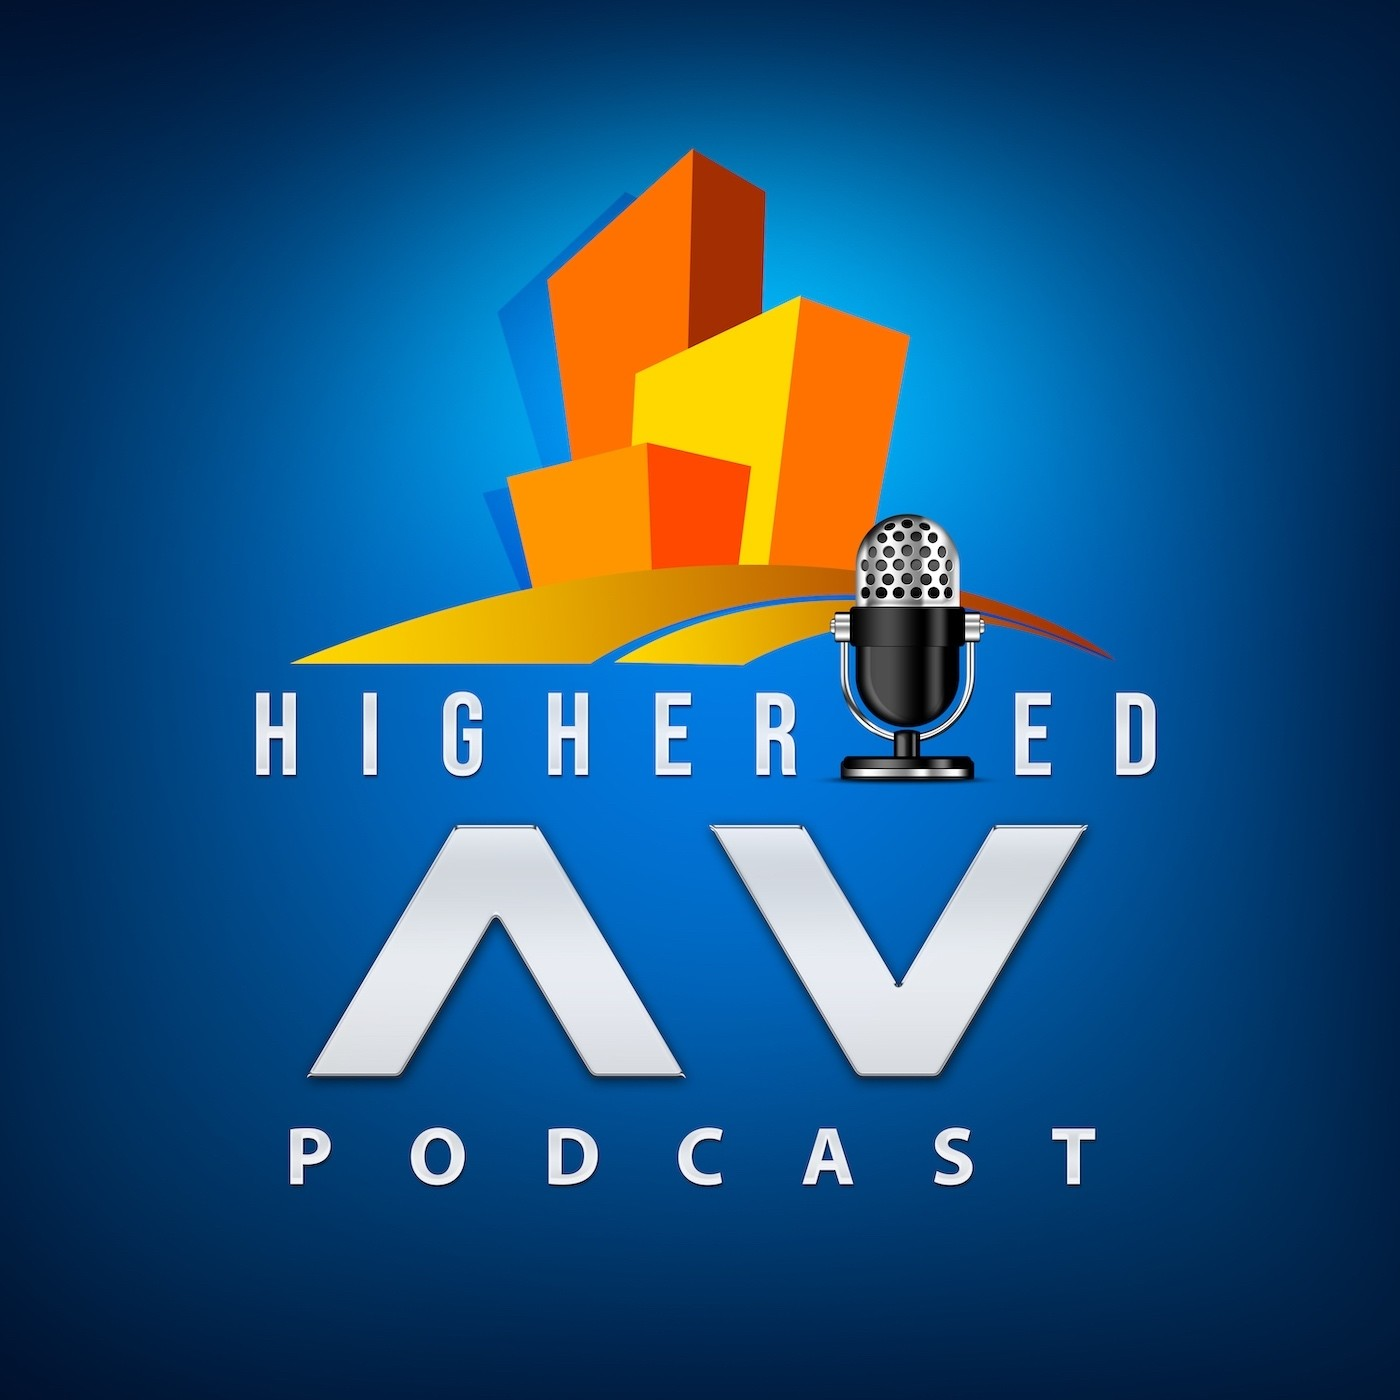 088: Margot Douaihy, PhD, Lecturer at Franklin Pierce University, and Writer & Editor for AV Industry Publications